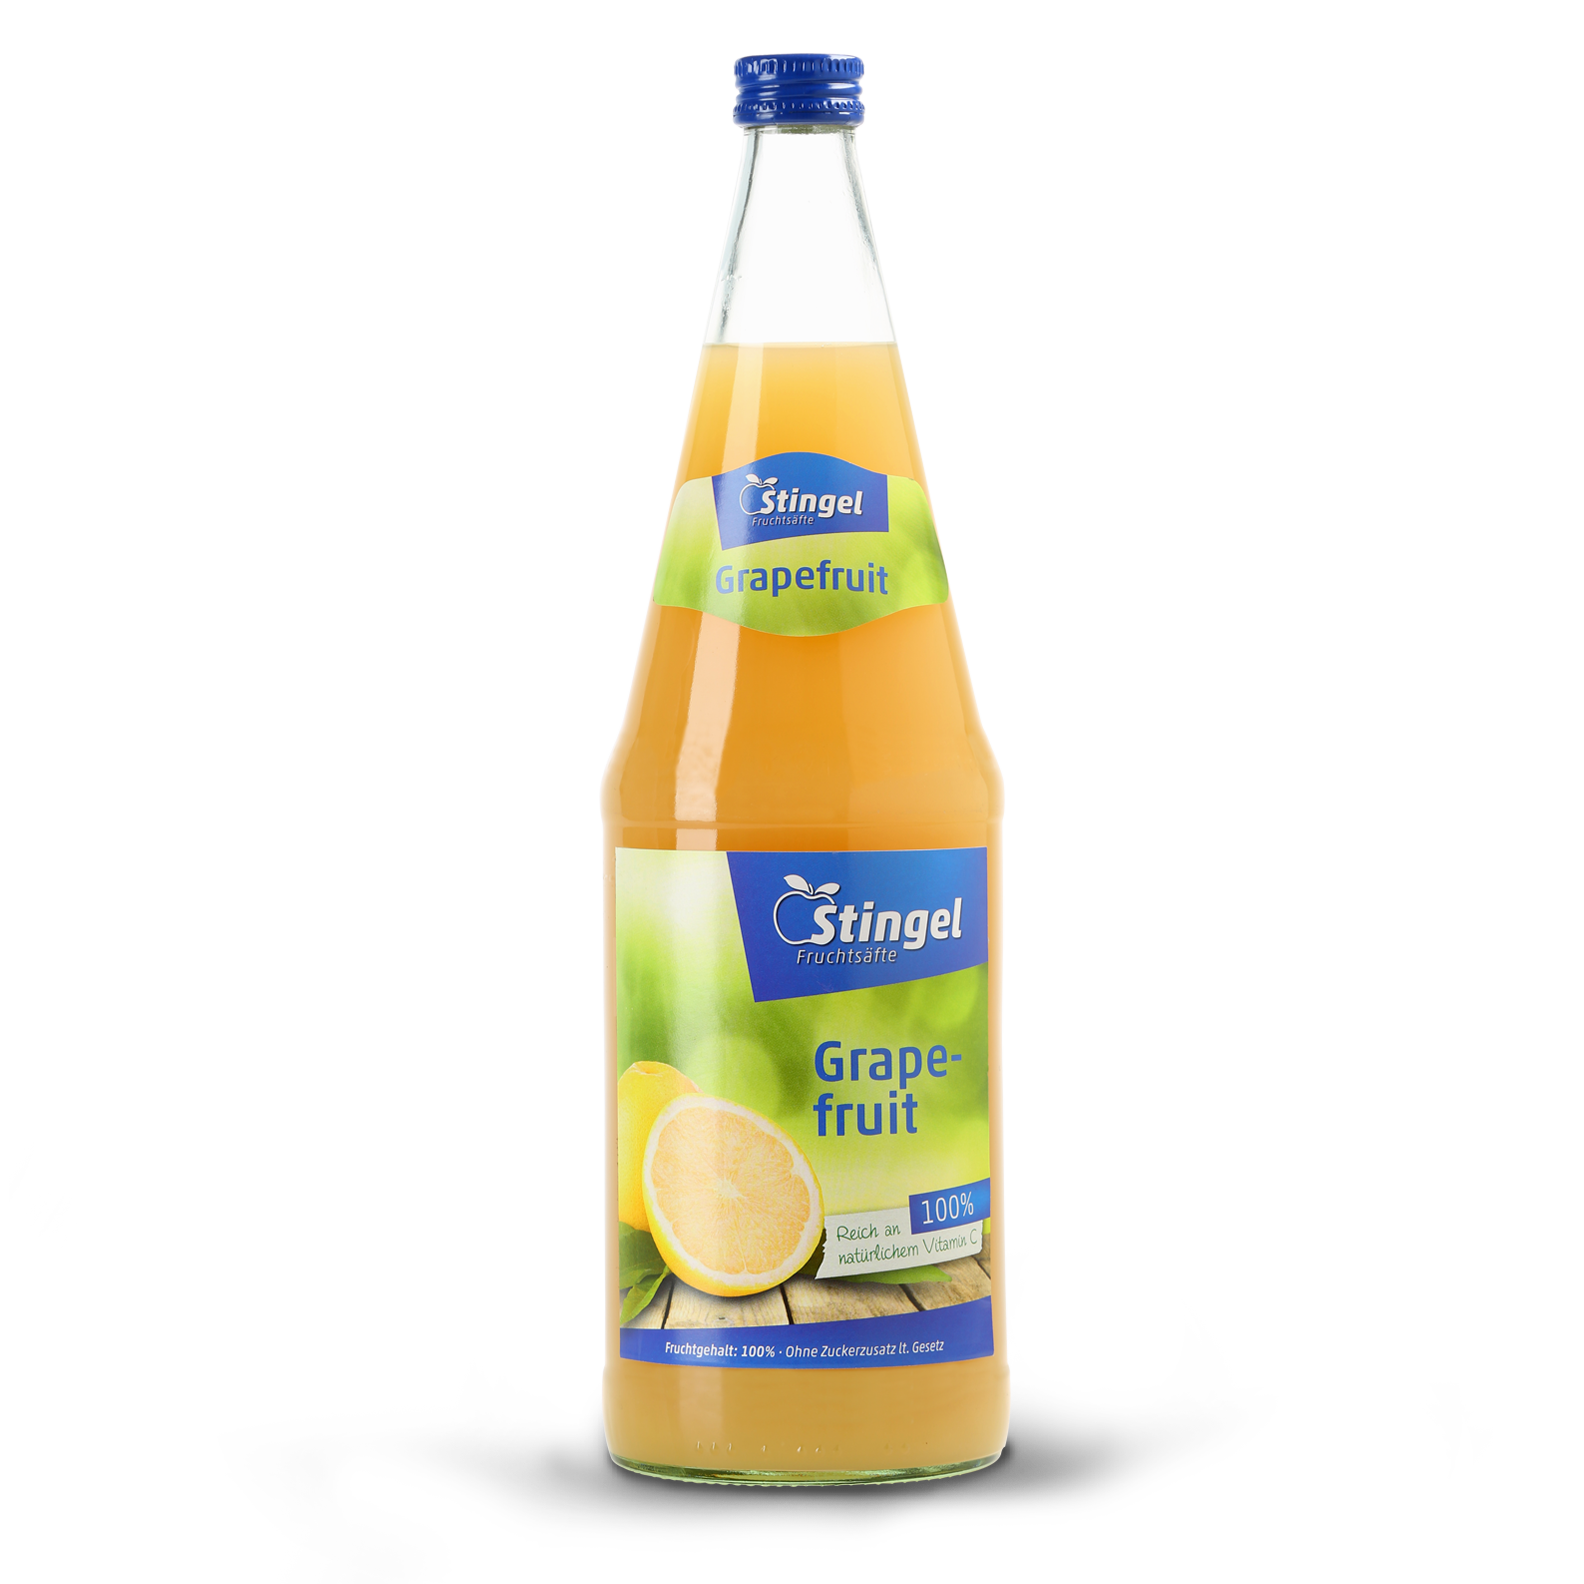 stingel_grapefruit_saft